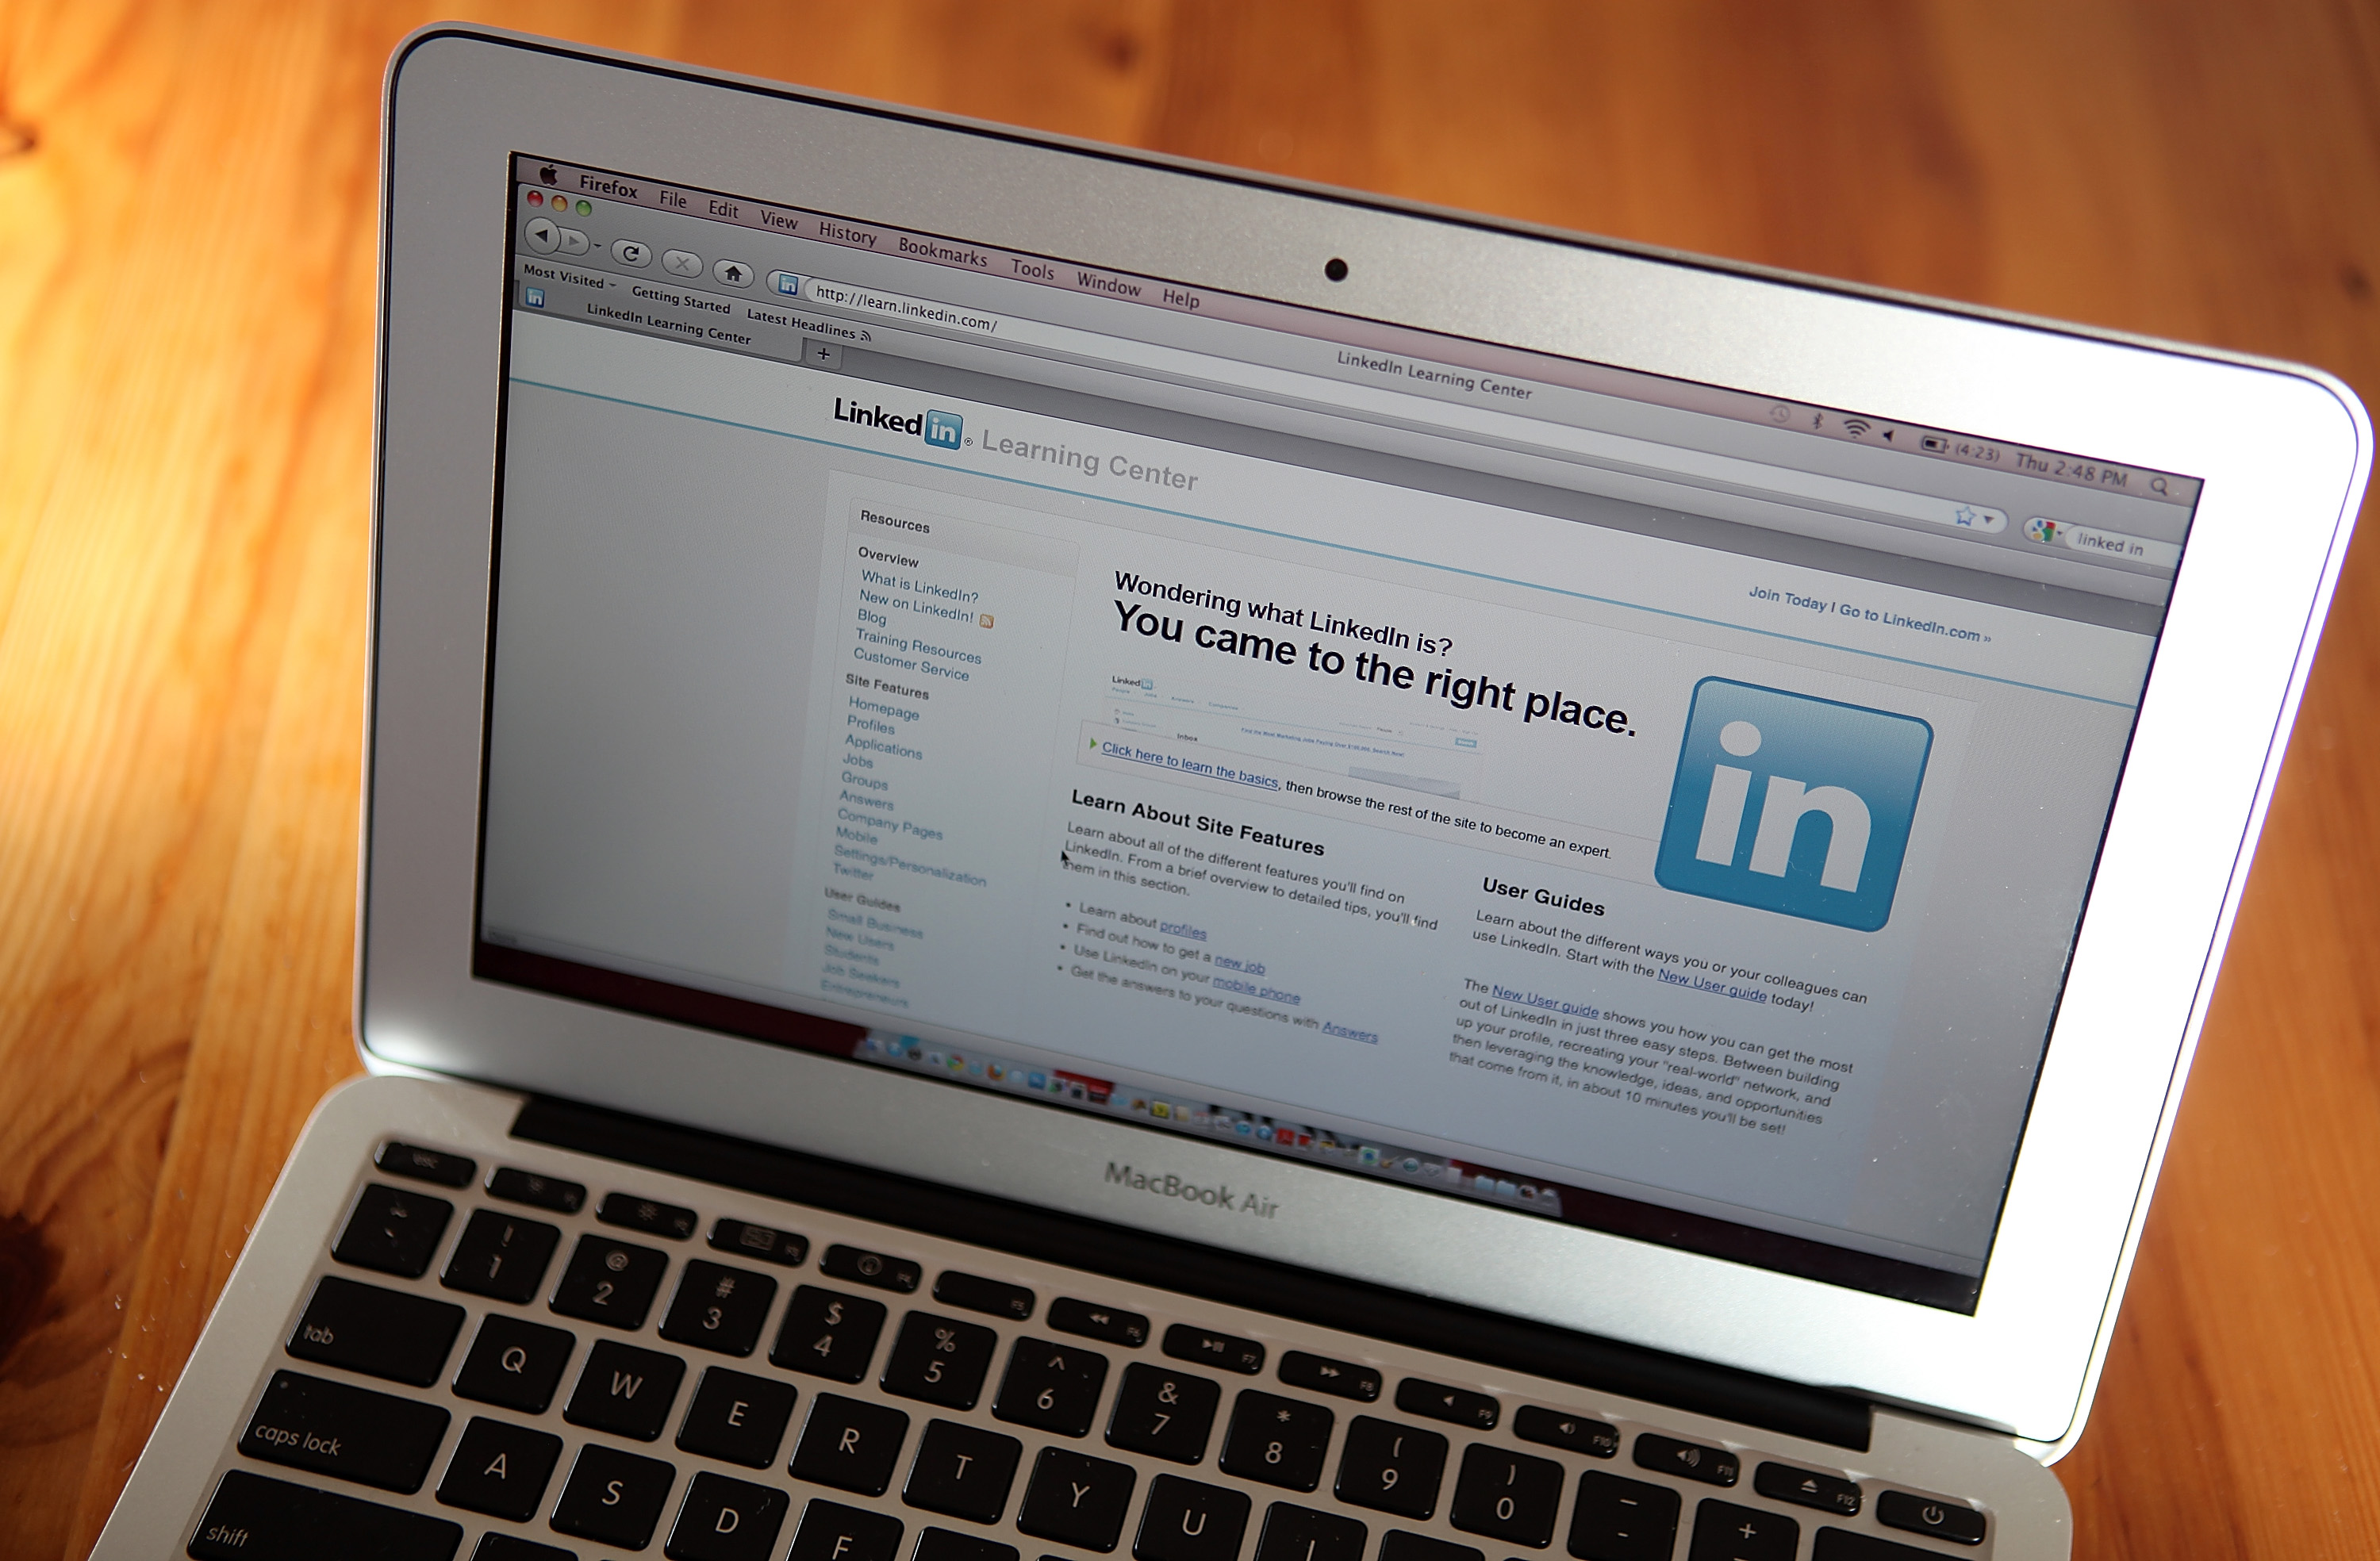 7 LinkedIn Stats to Improve Your Marketing Strategy